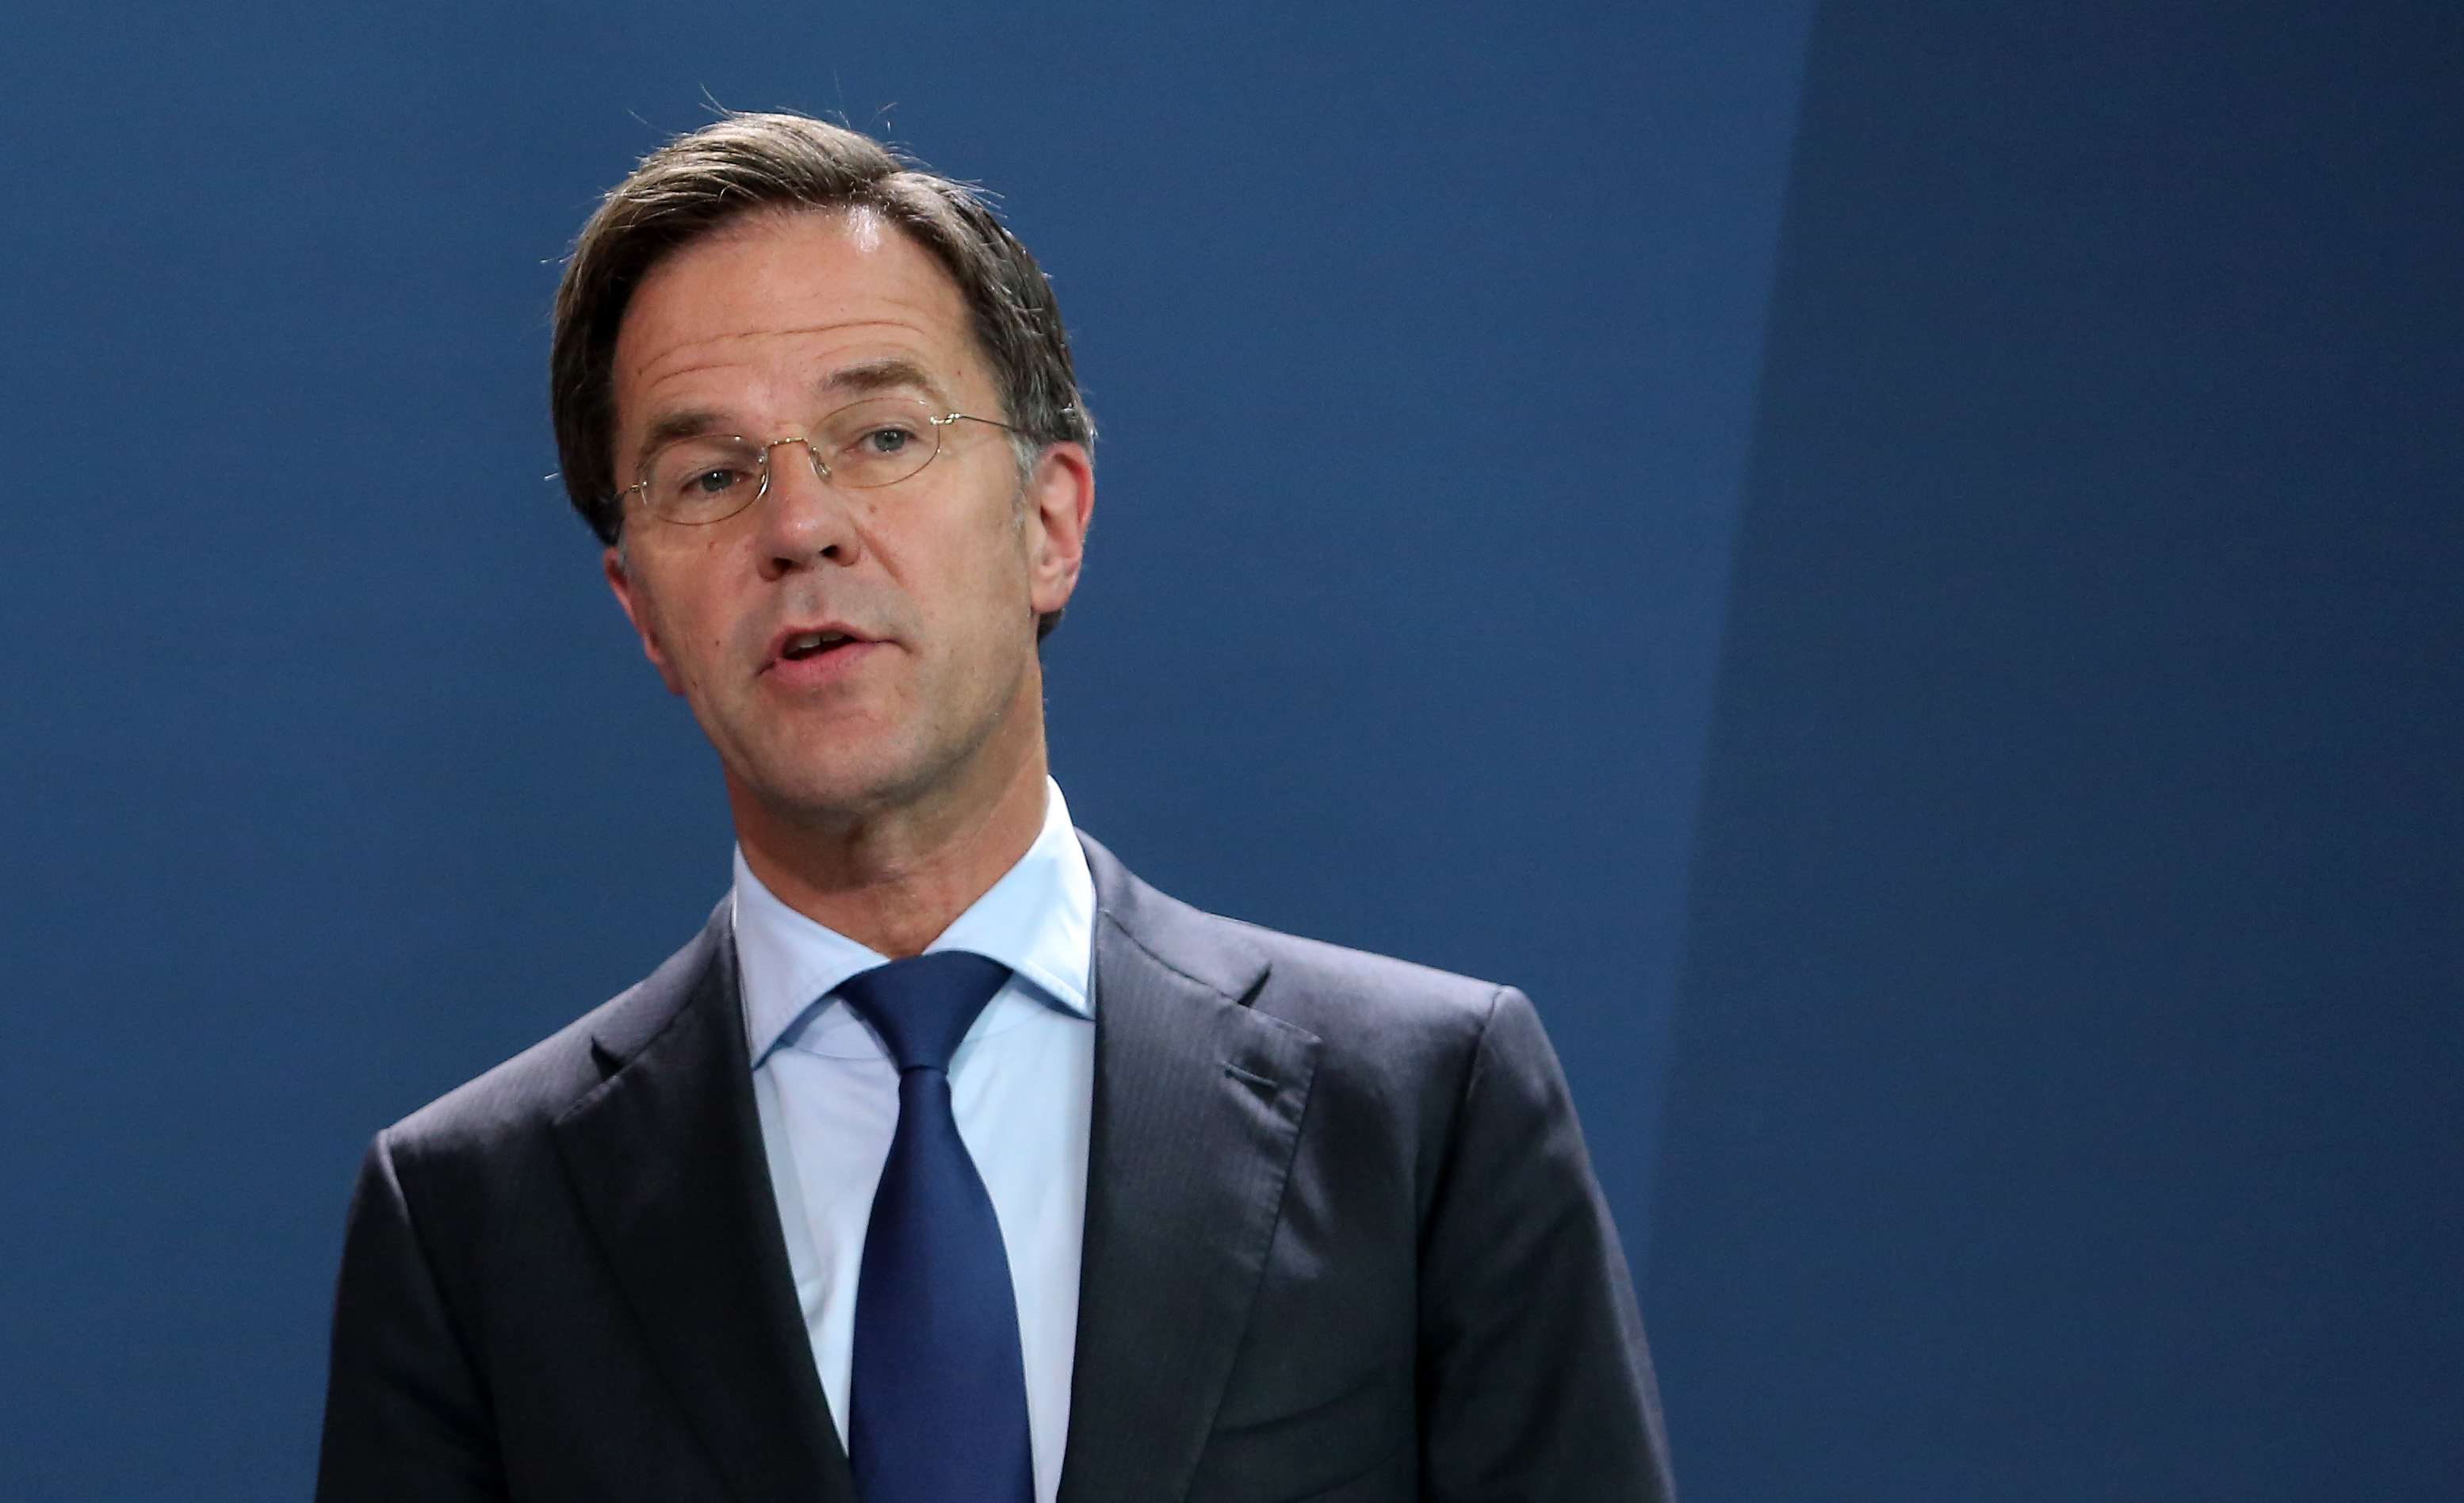 Dutch Prime Minister Mark Rutte attends a news conference in Berlin on July 9.